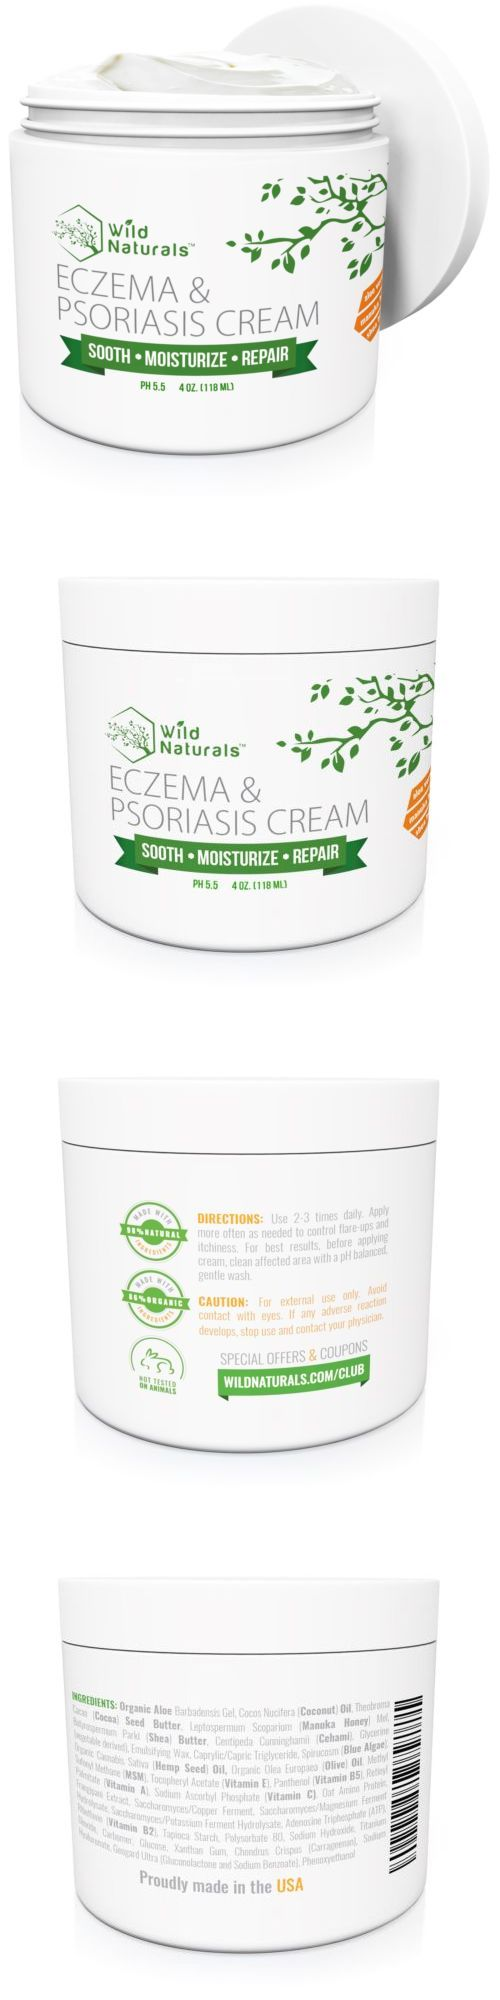 Other Skin Care: New Wild Naturals Eczema And Psoriasis Cream 4Oz 8Oz | Soothing Natural Relief -> BUY IT NOW ONLY: $33.96 on eBay!